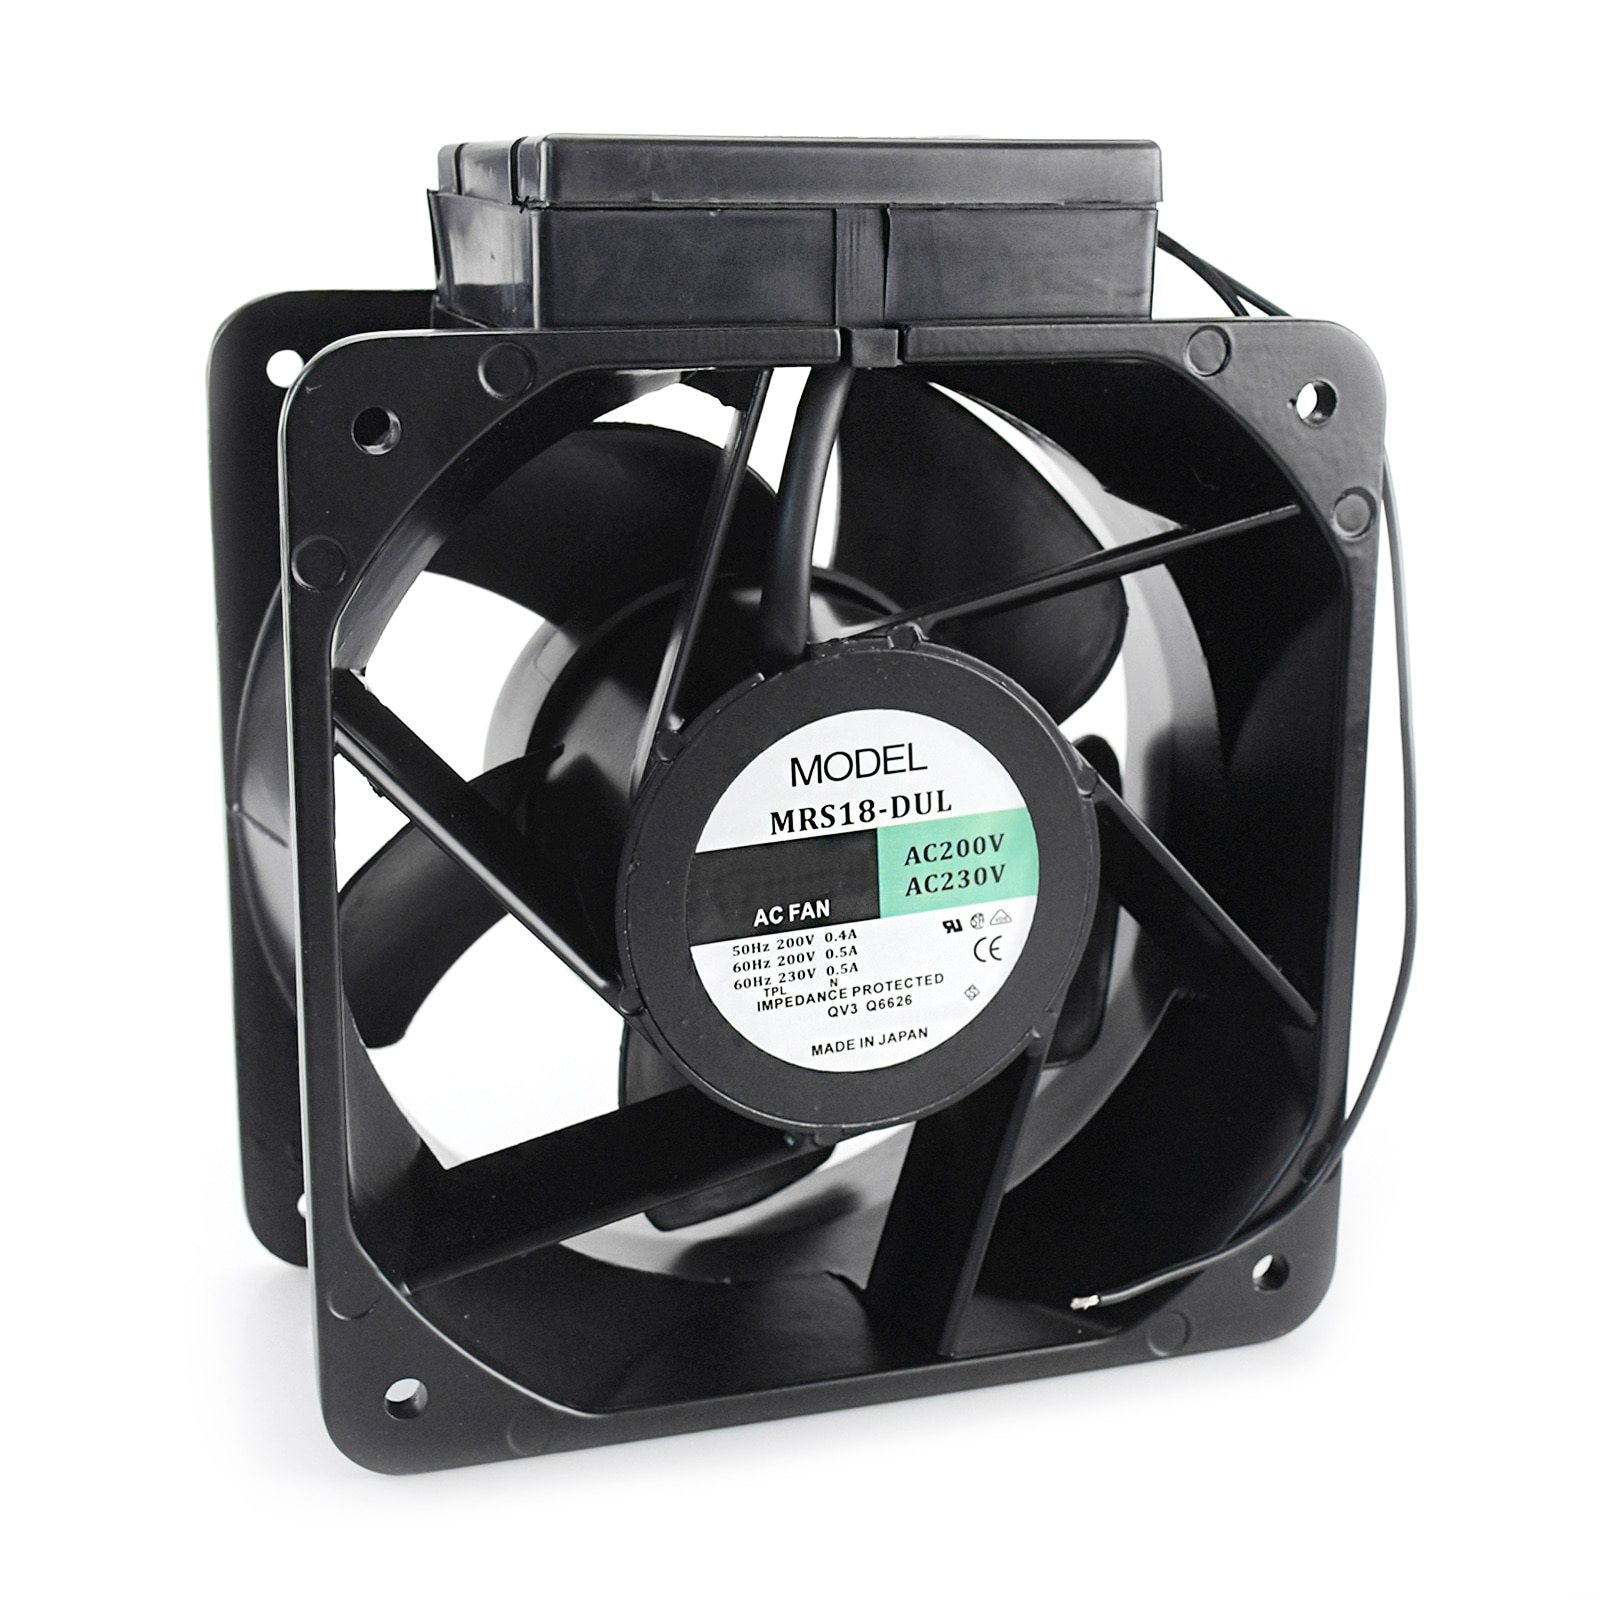 ORIX MRS18-DUL 18cm 200-230V industrial cooling fan